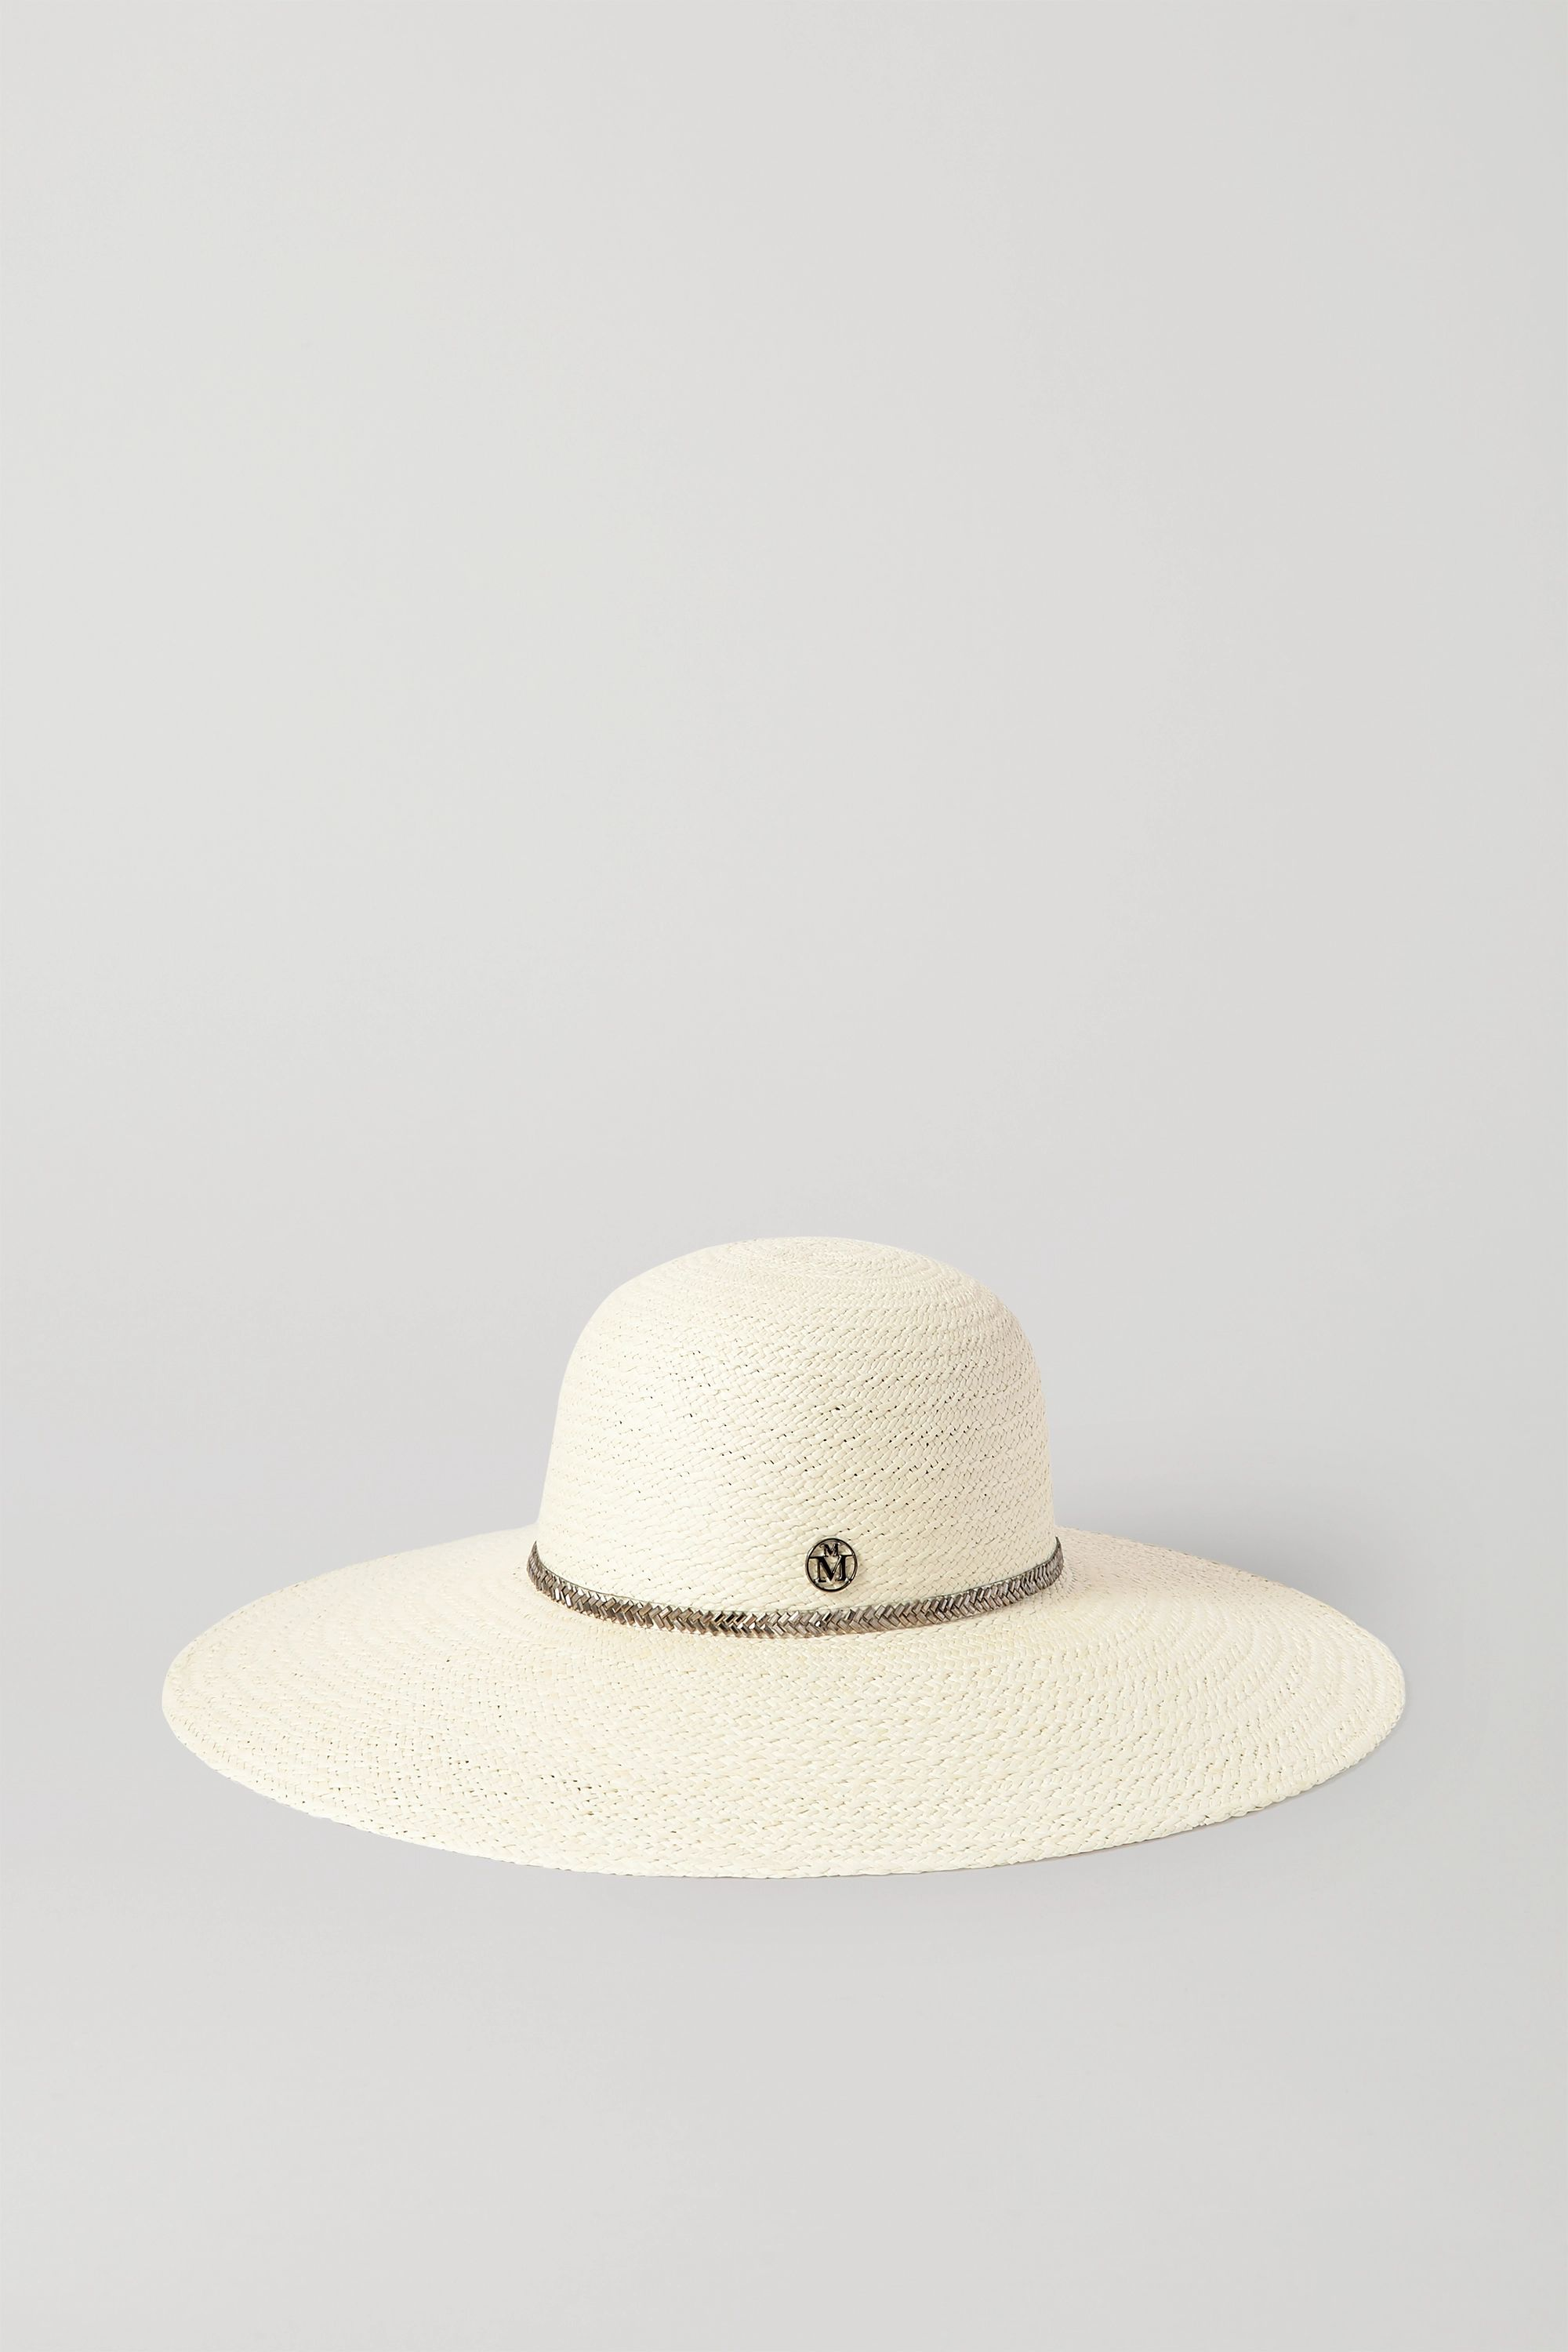 Maison Michel Blanche crystal-embellished straw sunhat